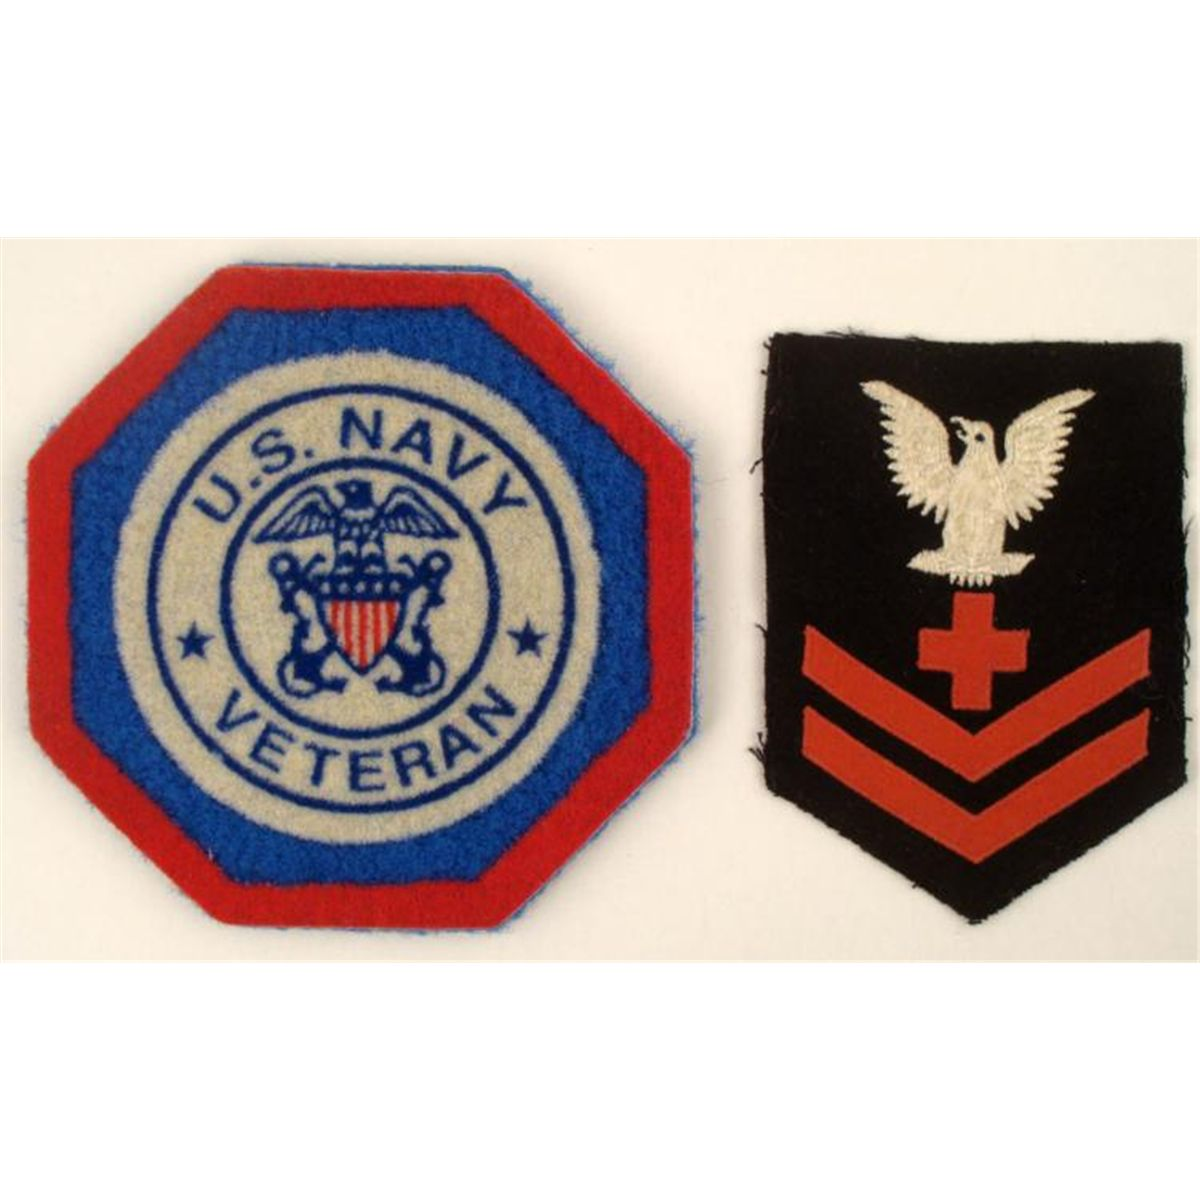 Wwii us navy red cross insignia patch and coaster biocorpaavc